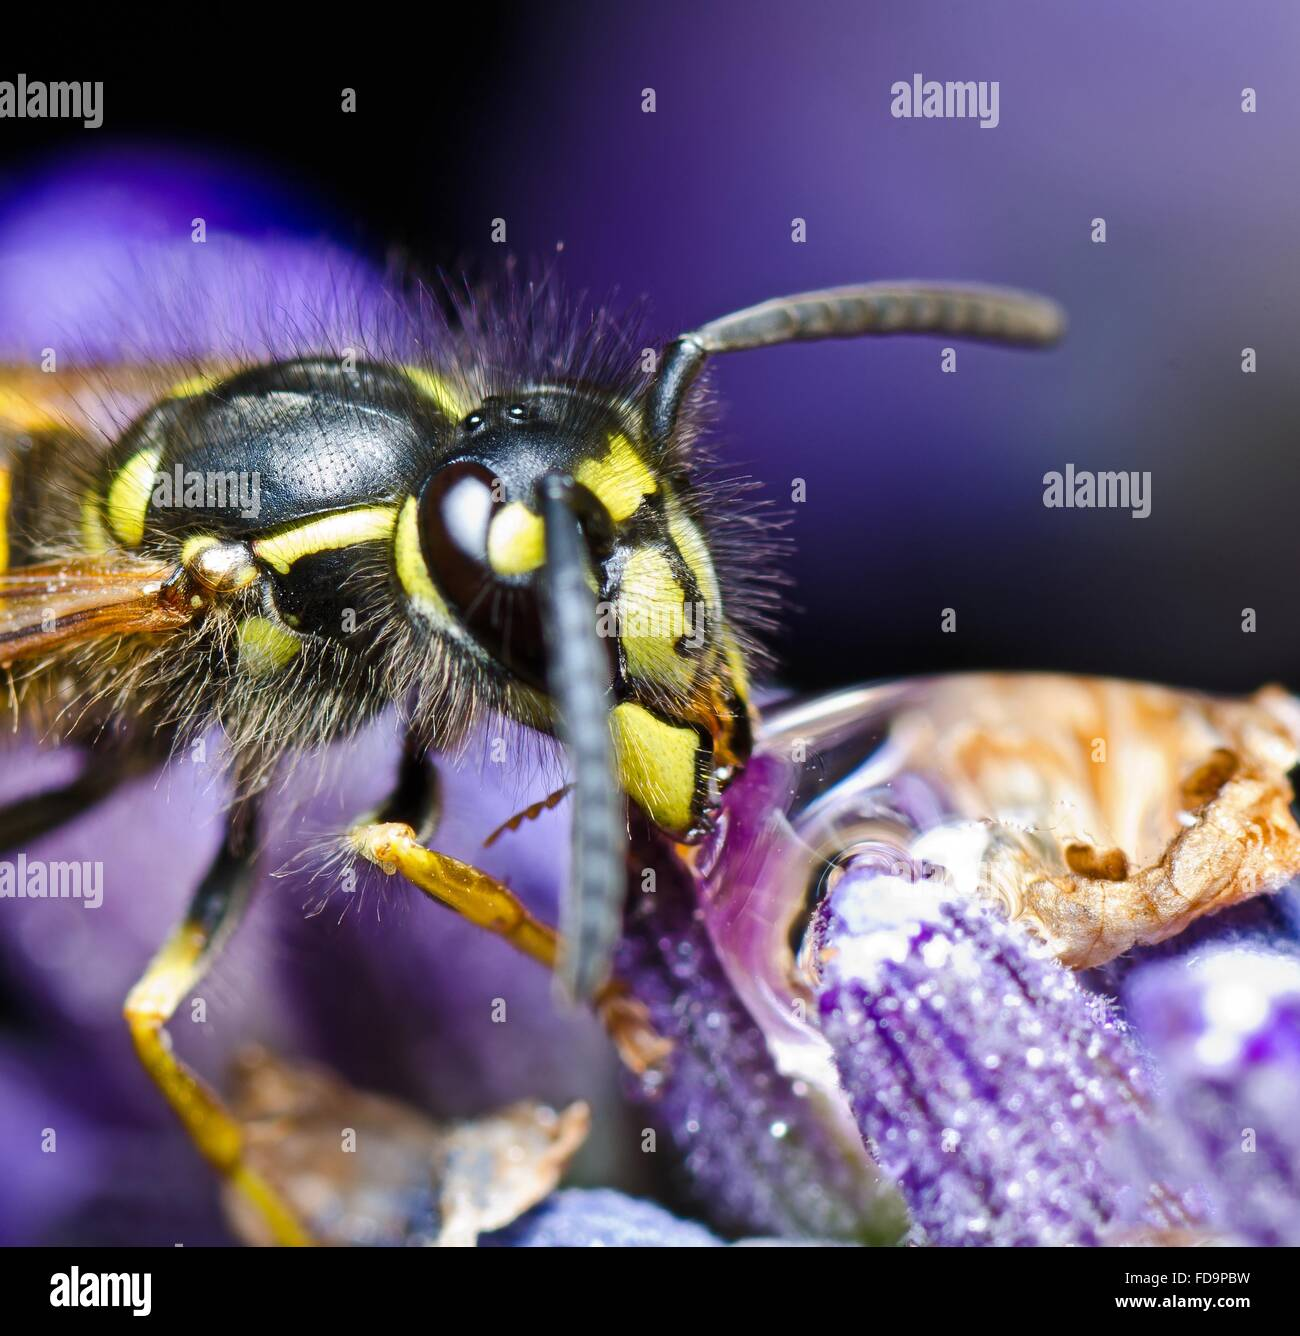 Extreme Close-Up Of Honey Bee On Flower - Stock Image